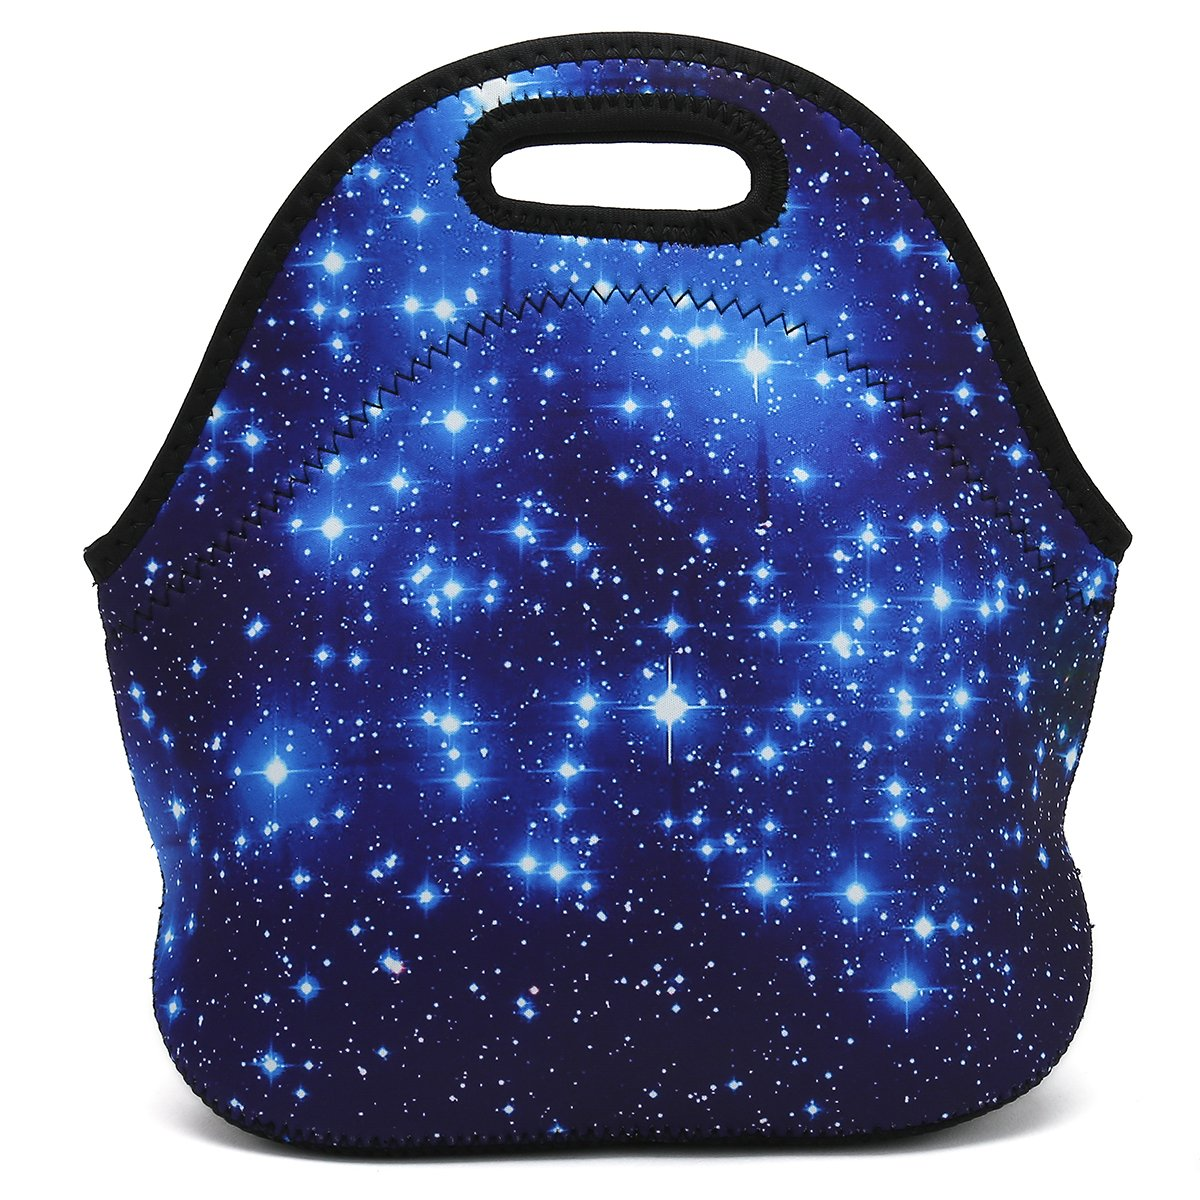 Boys Girls Kids Women Adults Insulated School Travel Outdoor Thermal Waterproof Carrying Lunch Tote Bag Cooler Box Neoprene Lunchbox Container Case (Starry Sky)